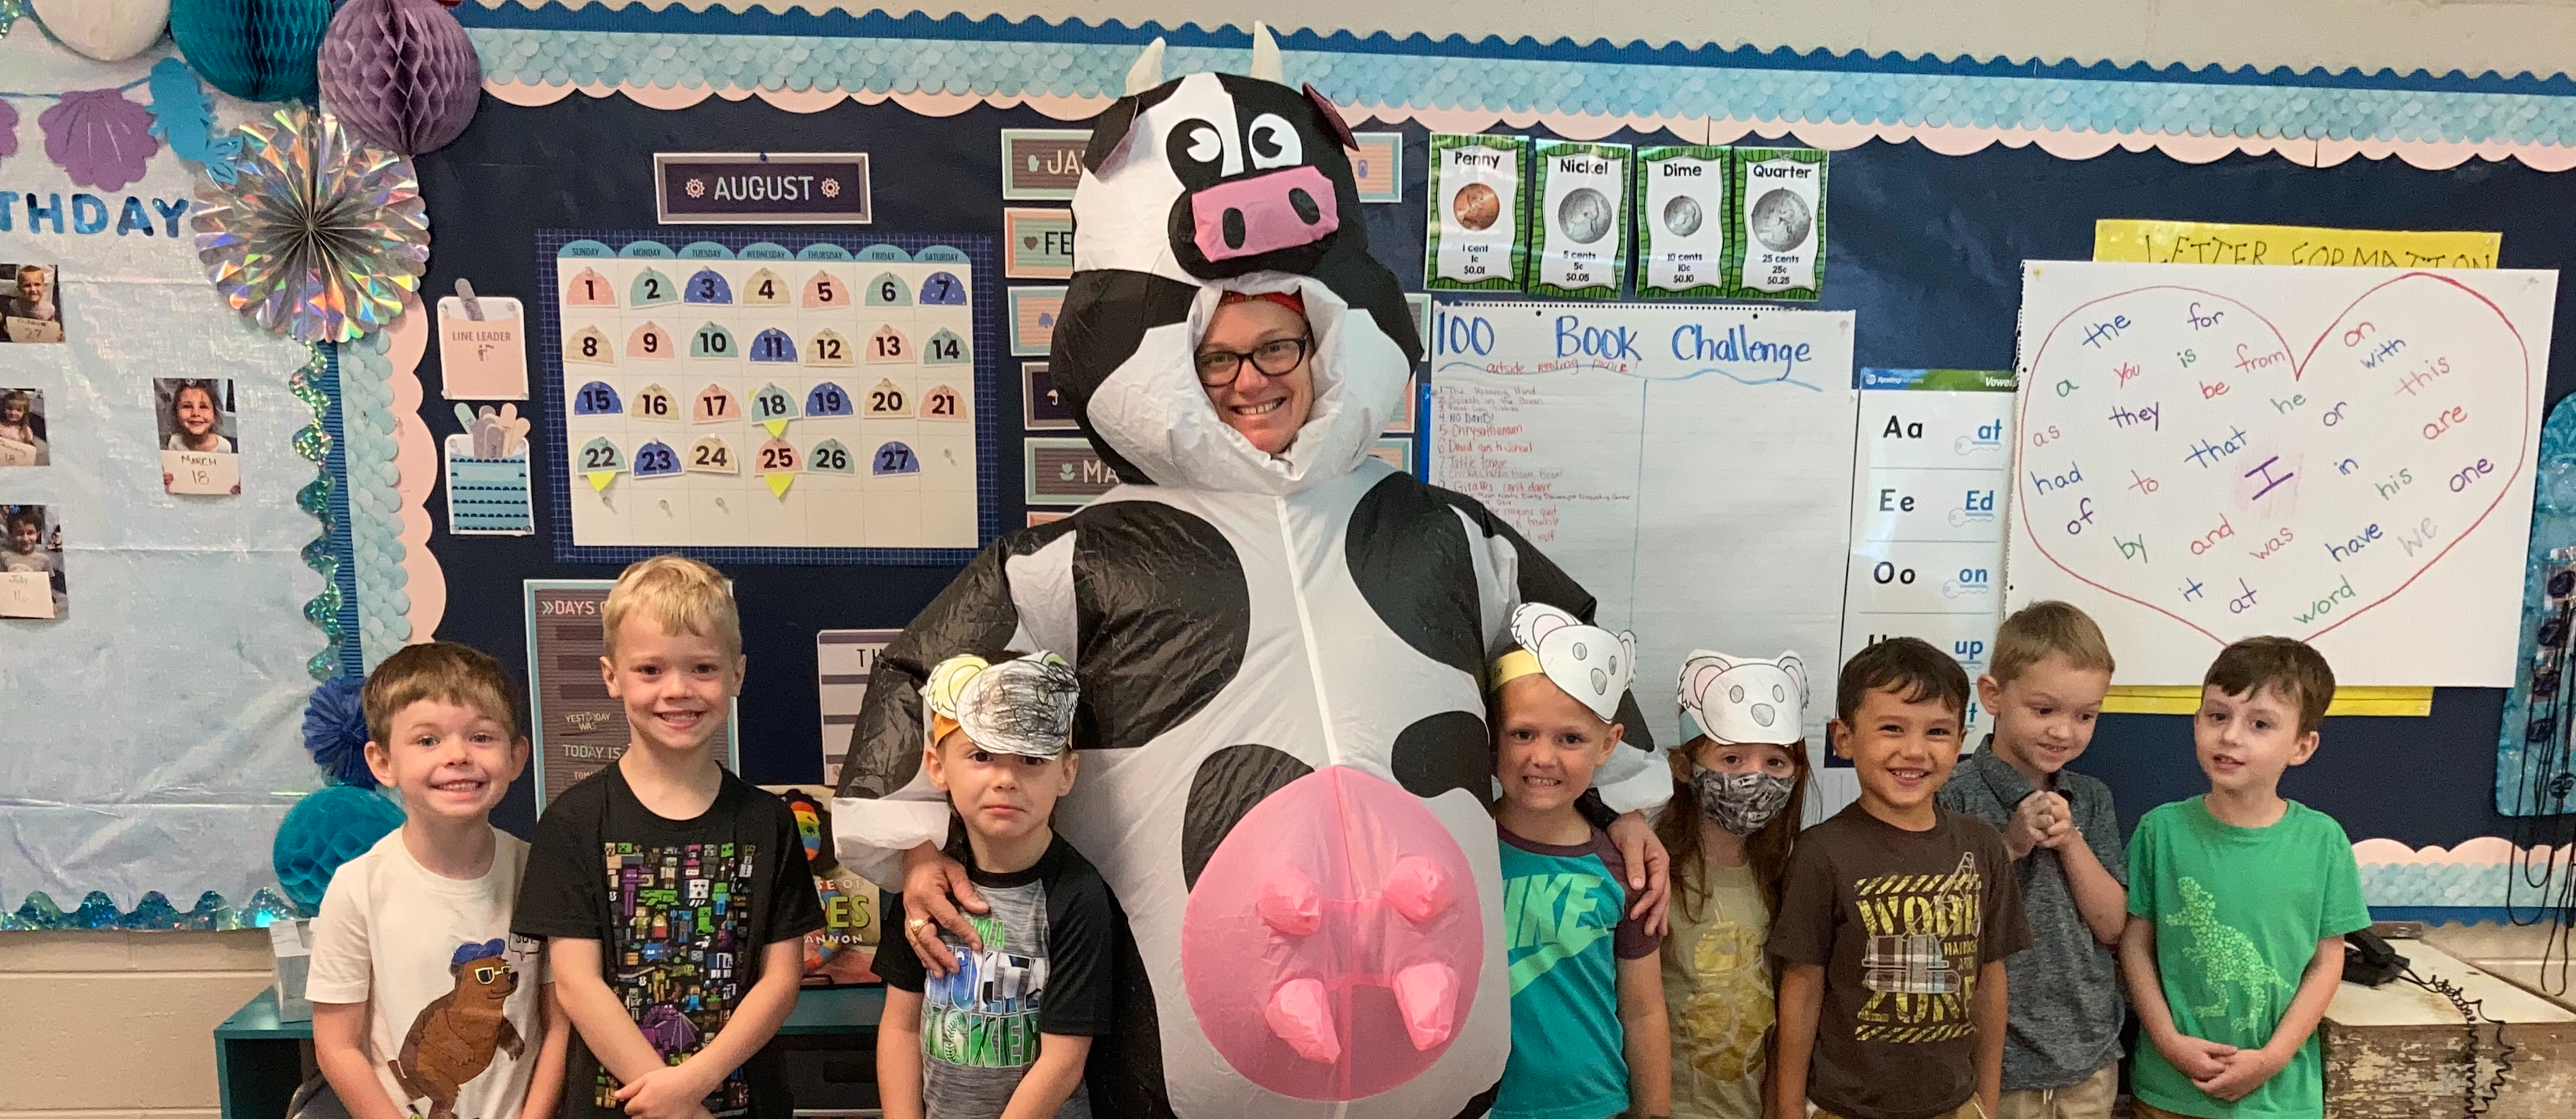 Carrie Roy as Cow